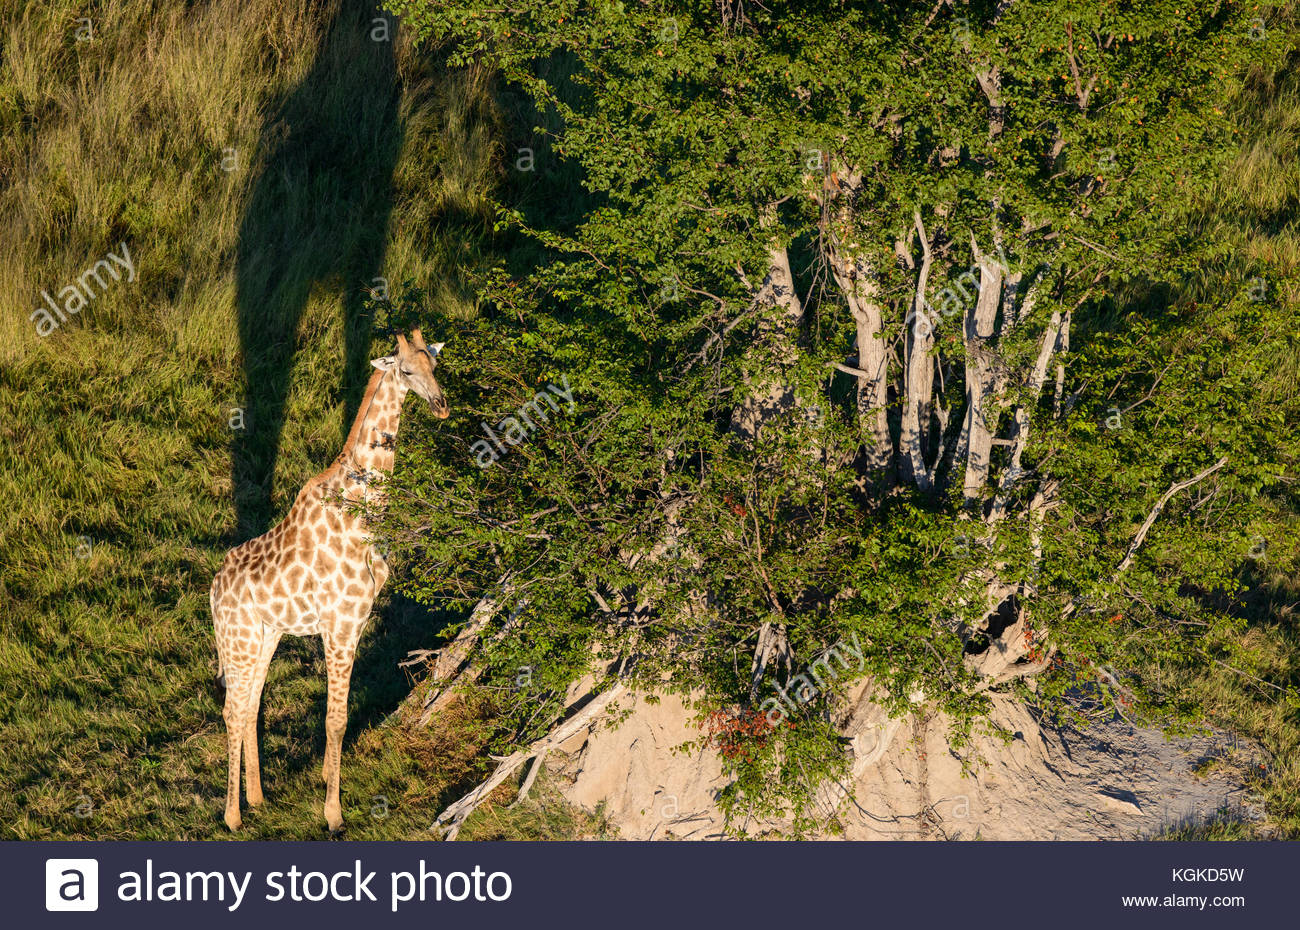 An aerial view of a giraffe. - Stock Image